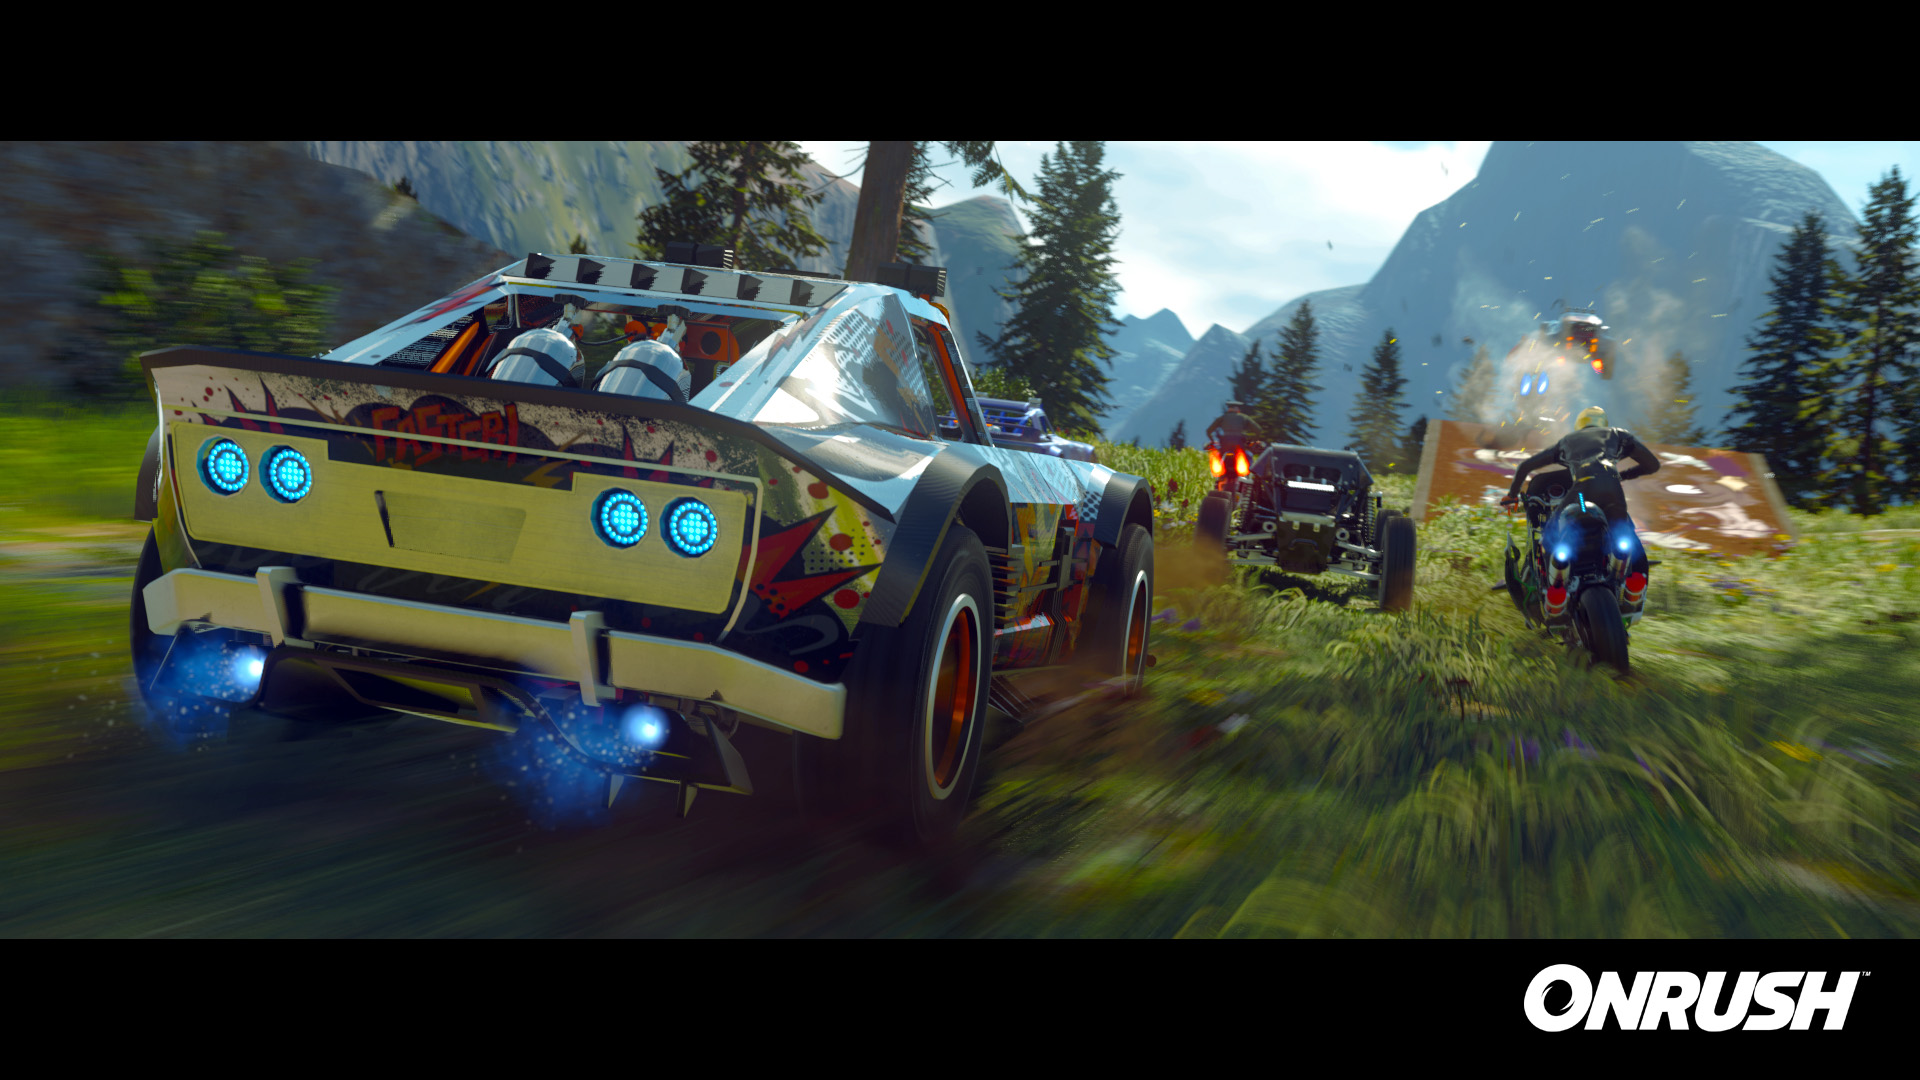 New action-packed Onrush video shows first gameplay glimpse